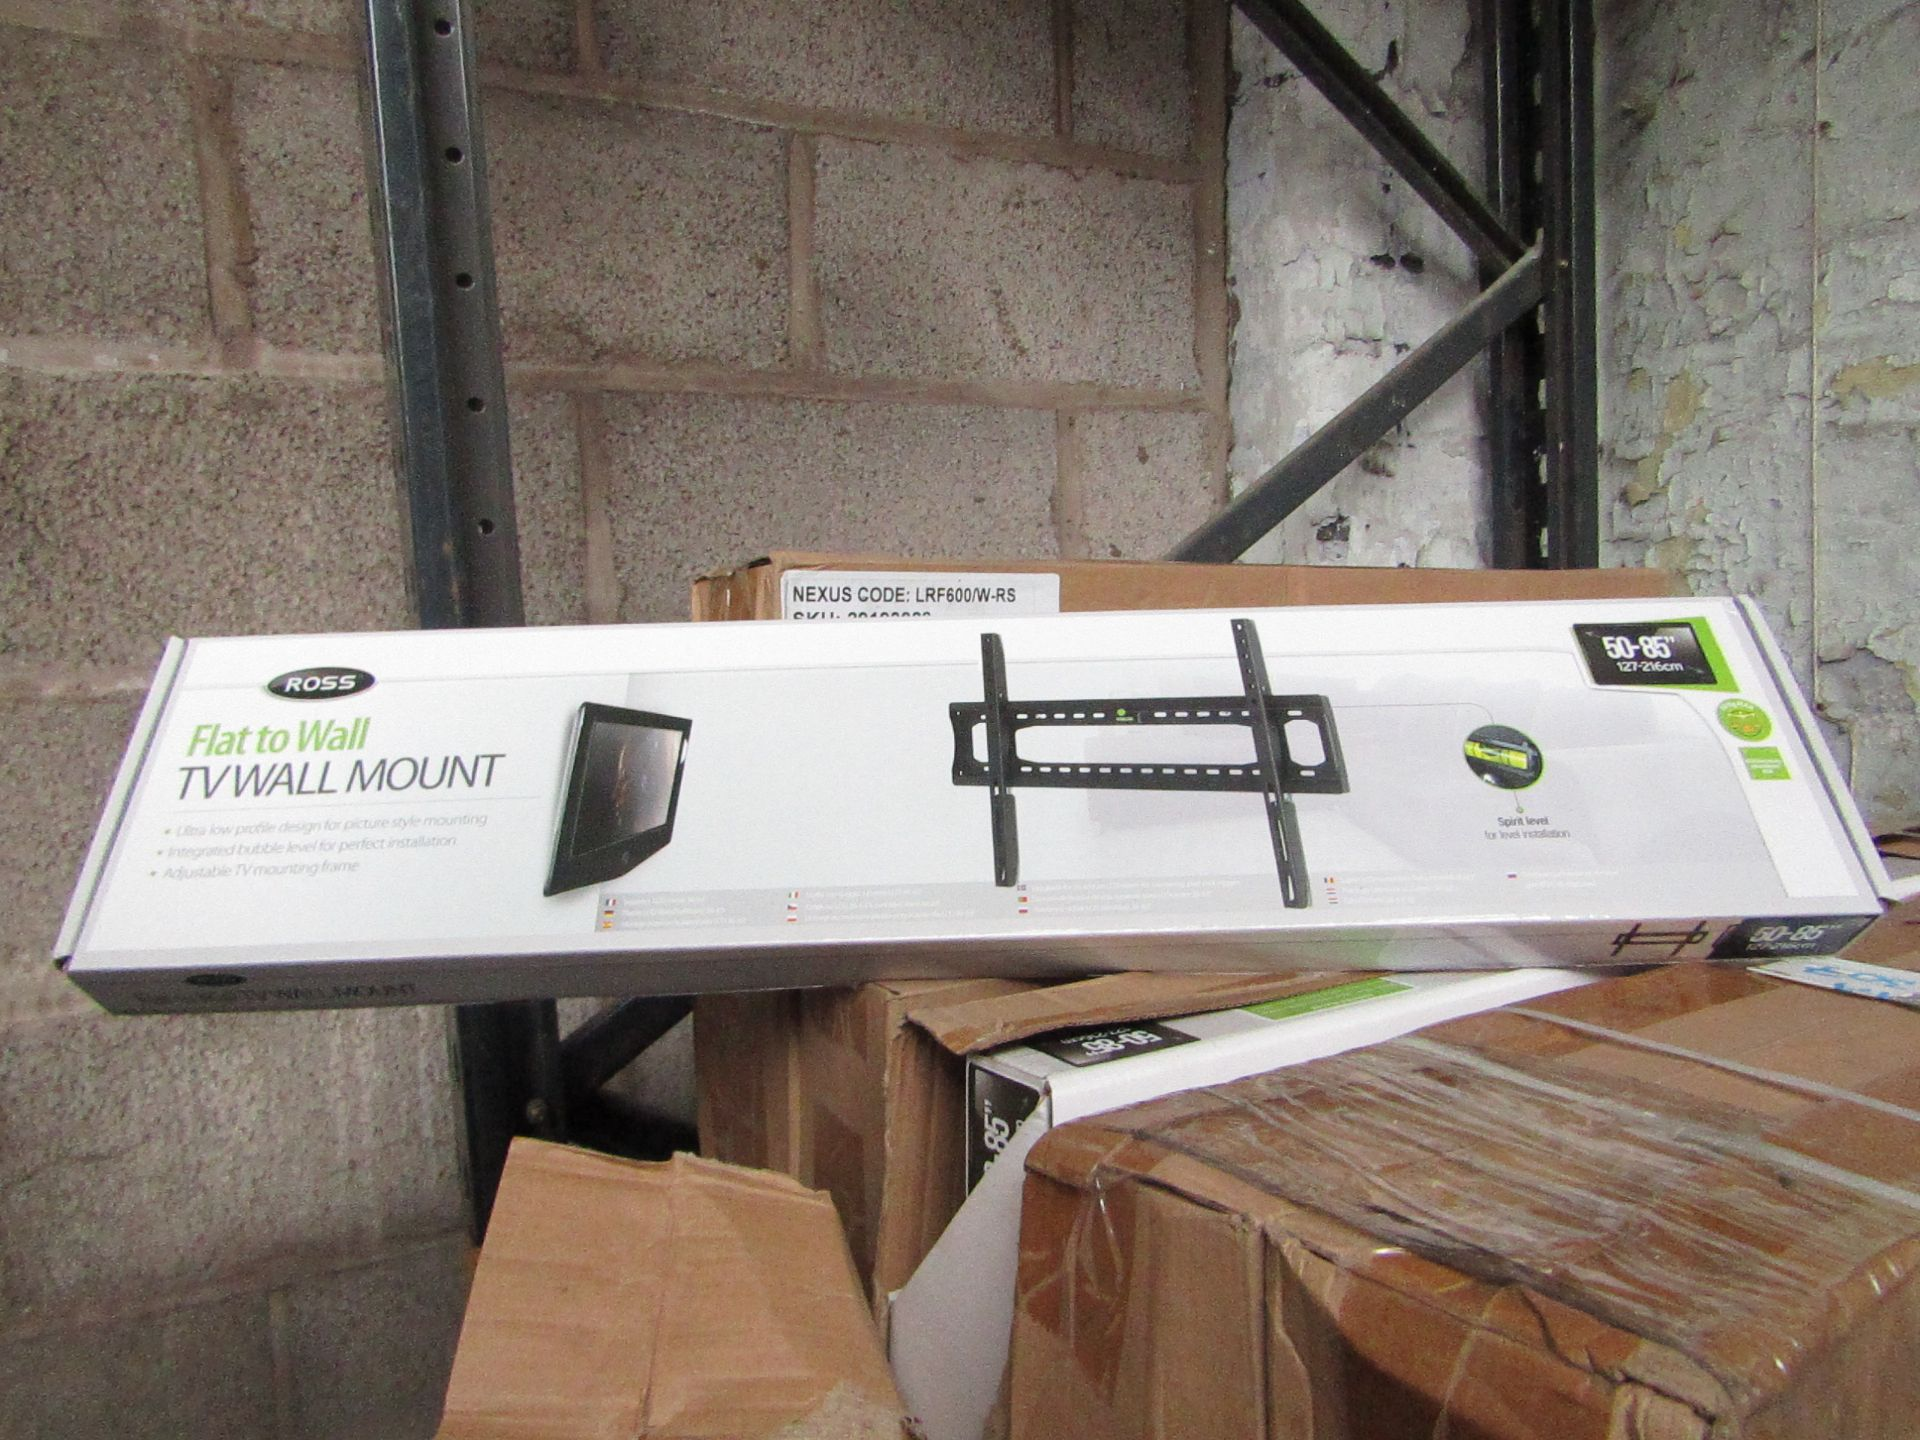 "Lot 178 - 2x Ross - Flat to Wall TV Mount 50 - 85"" - New & Boxed."